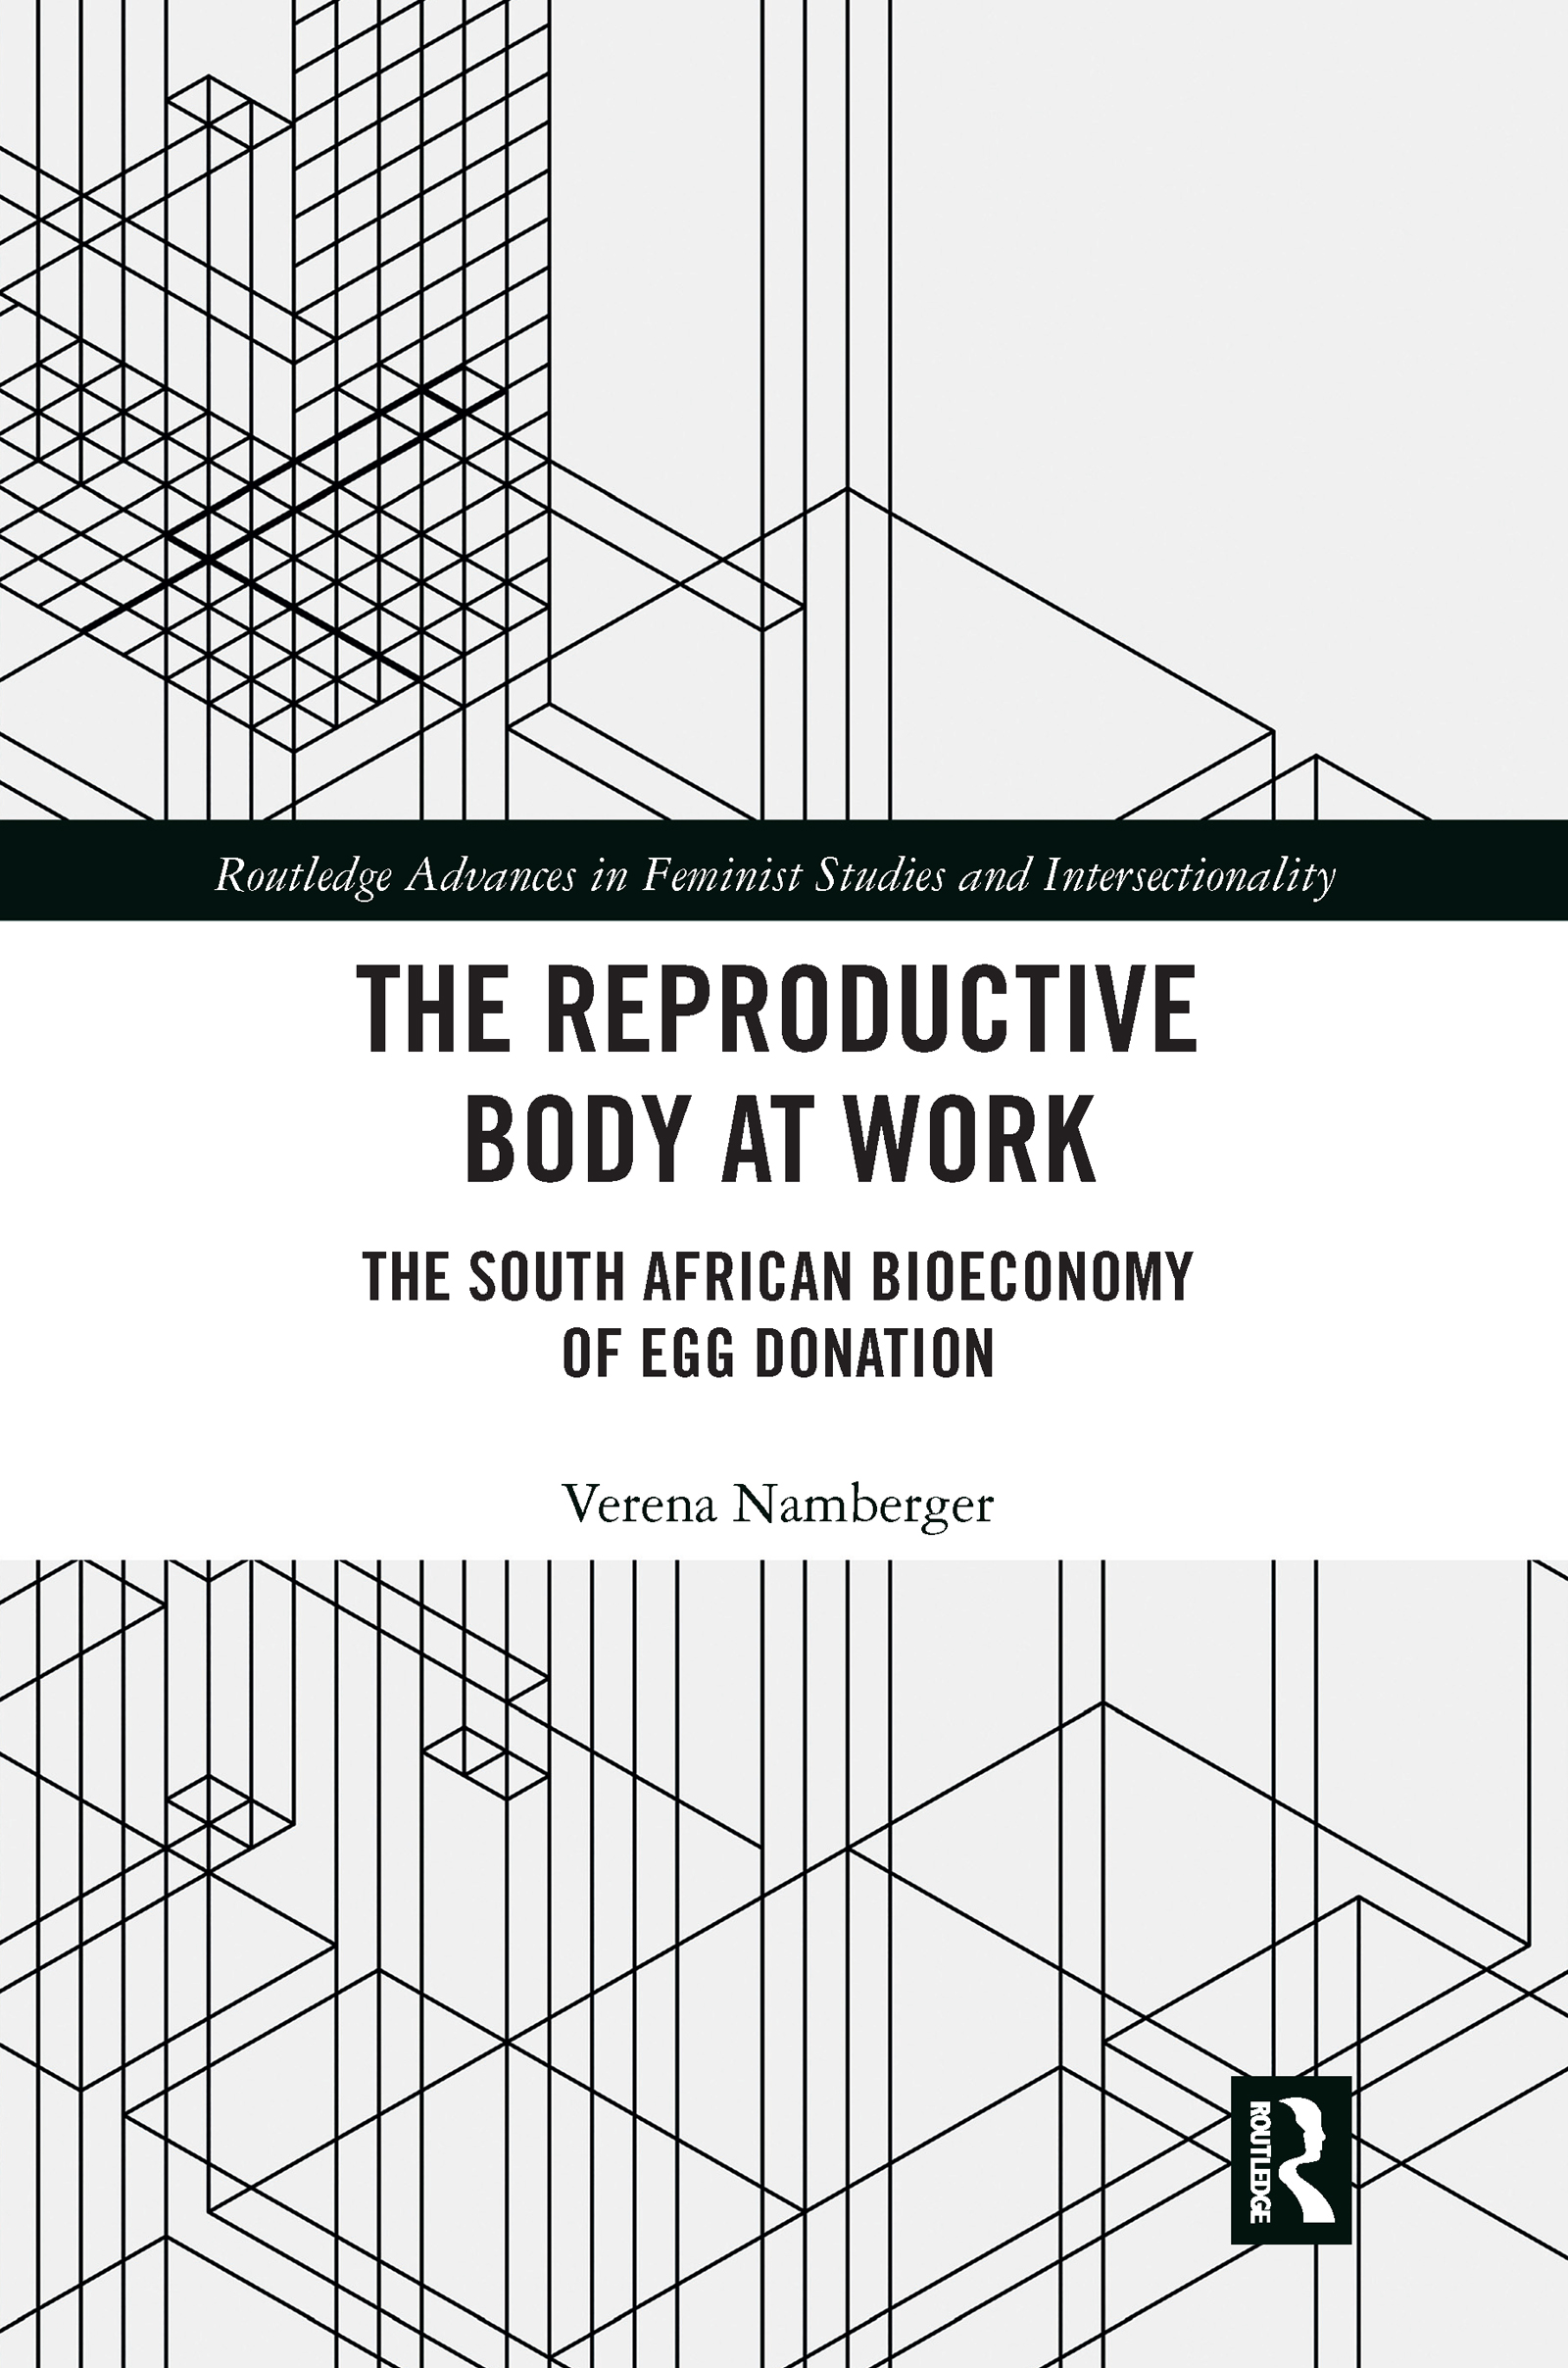 The Reproductive Body at Work